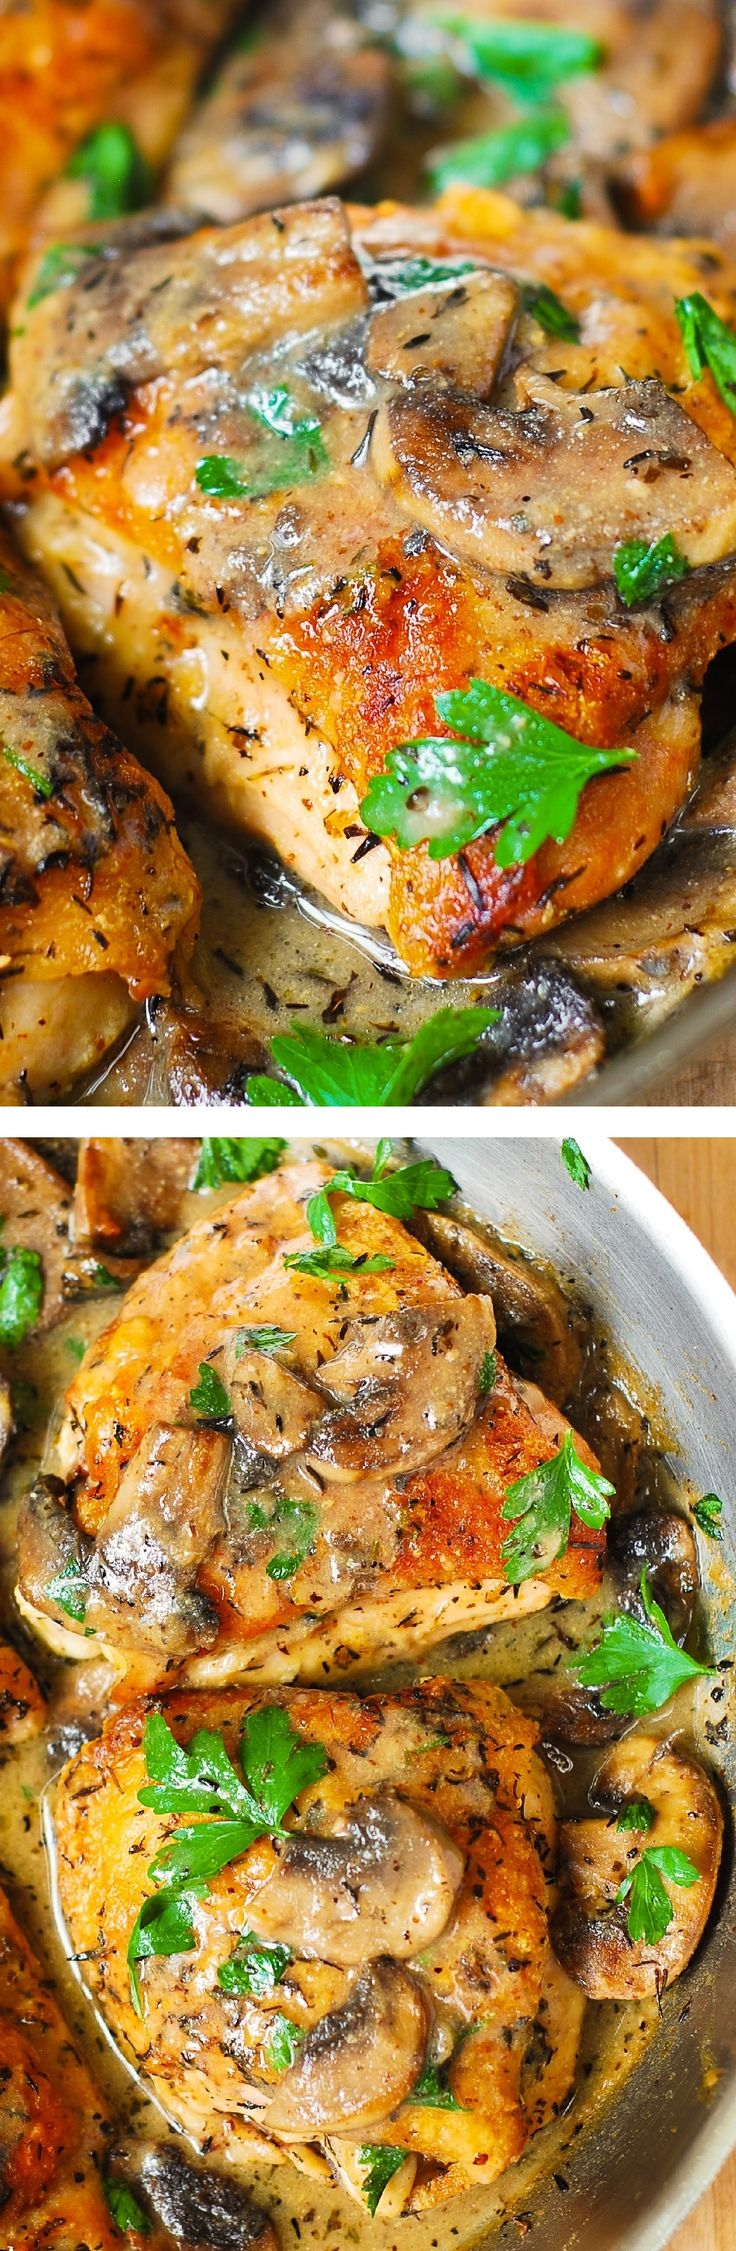 #SummerStartsNow Chicken and Mushrooms with a Creamy Herb Sauce - moist and tender chicken thighs with crispy skin! #BHG #sponsored